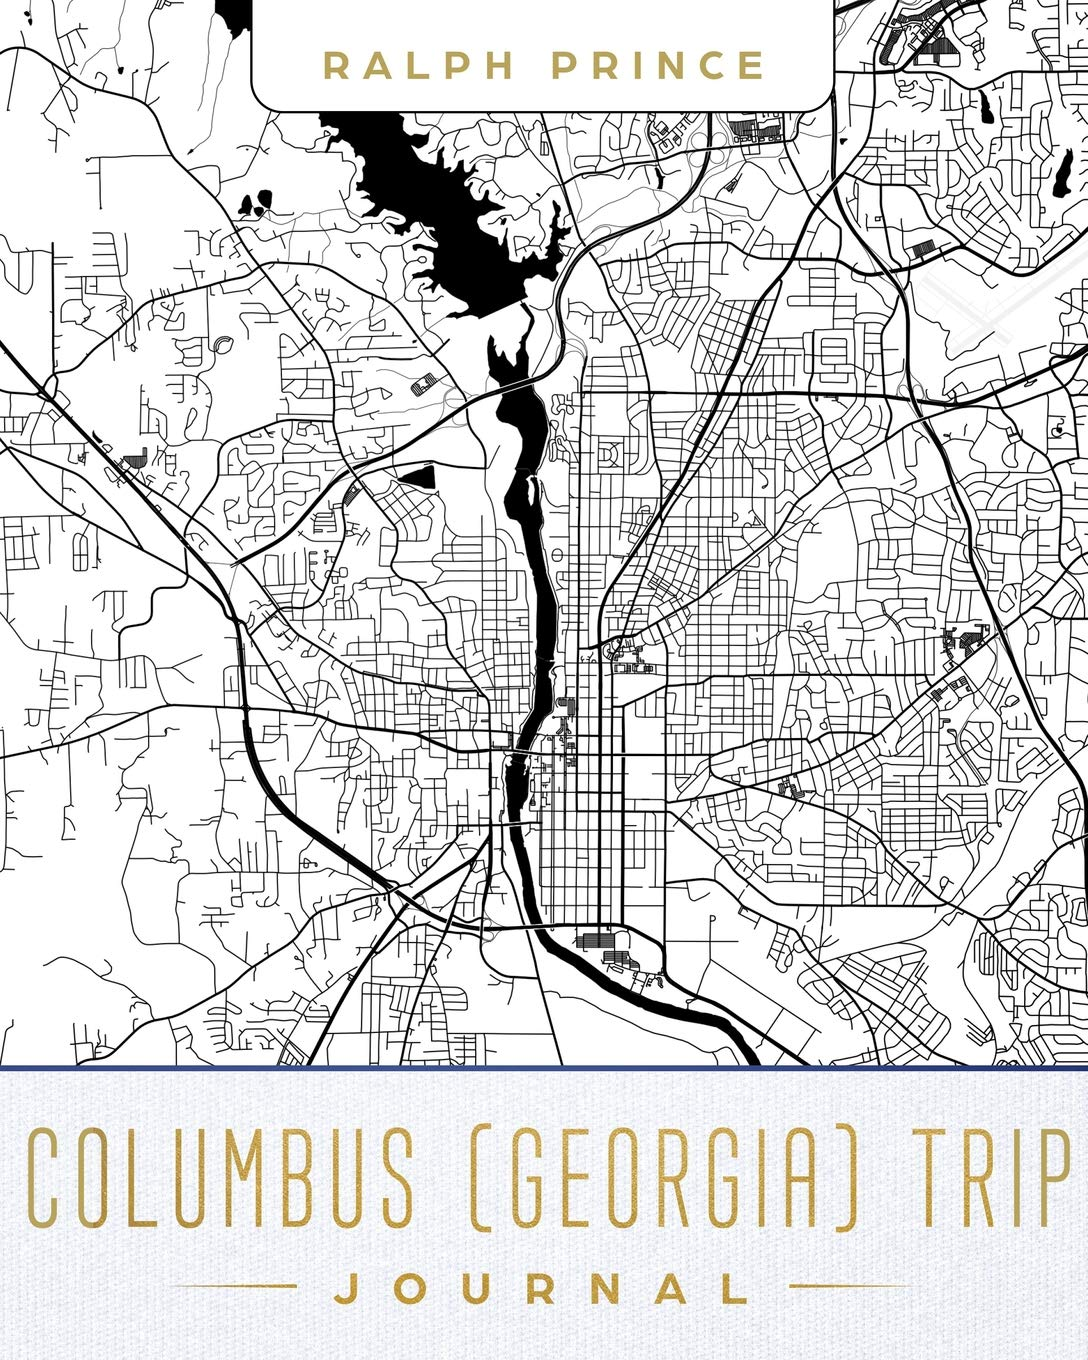 Map Of Columbus Georgia.Columbus Georgia Trip Journal Lined Travel Journal Diary Notebook